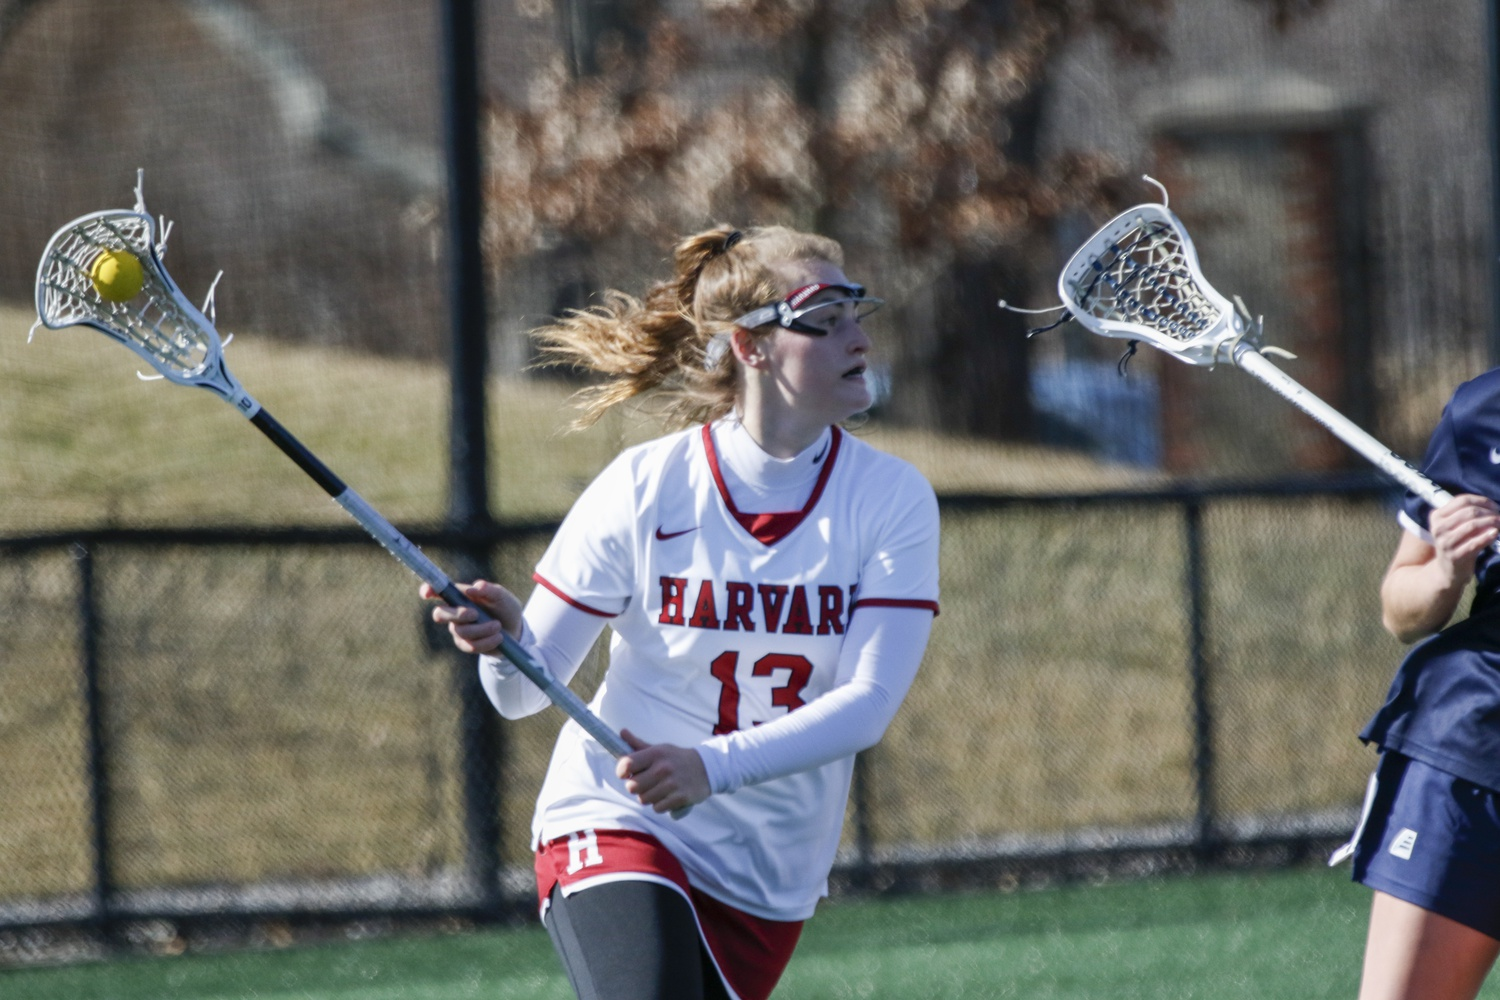 Senior attacker Keeley MacAfee notched her 100th career goal in a contest against UNH